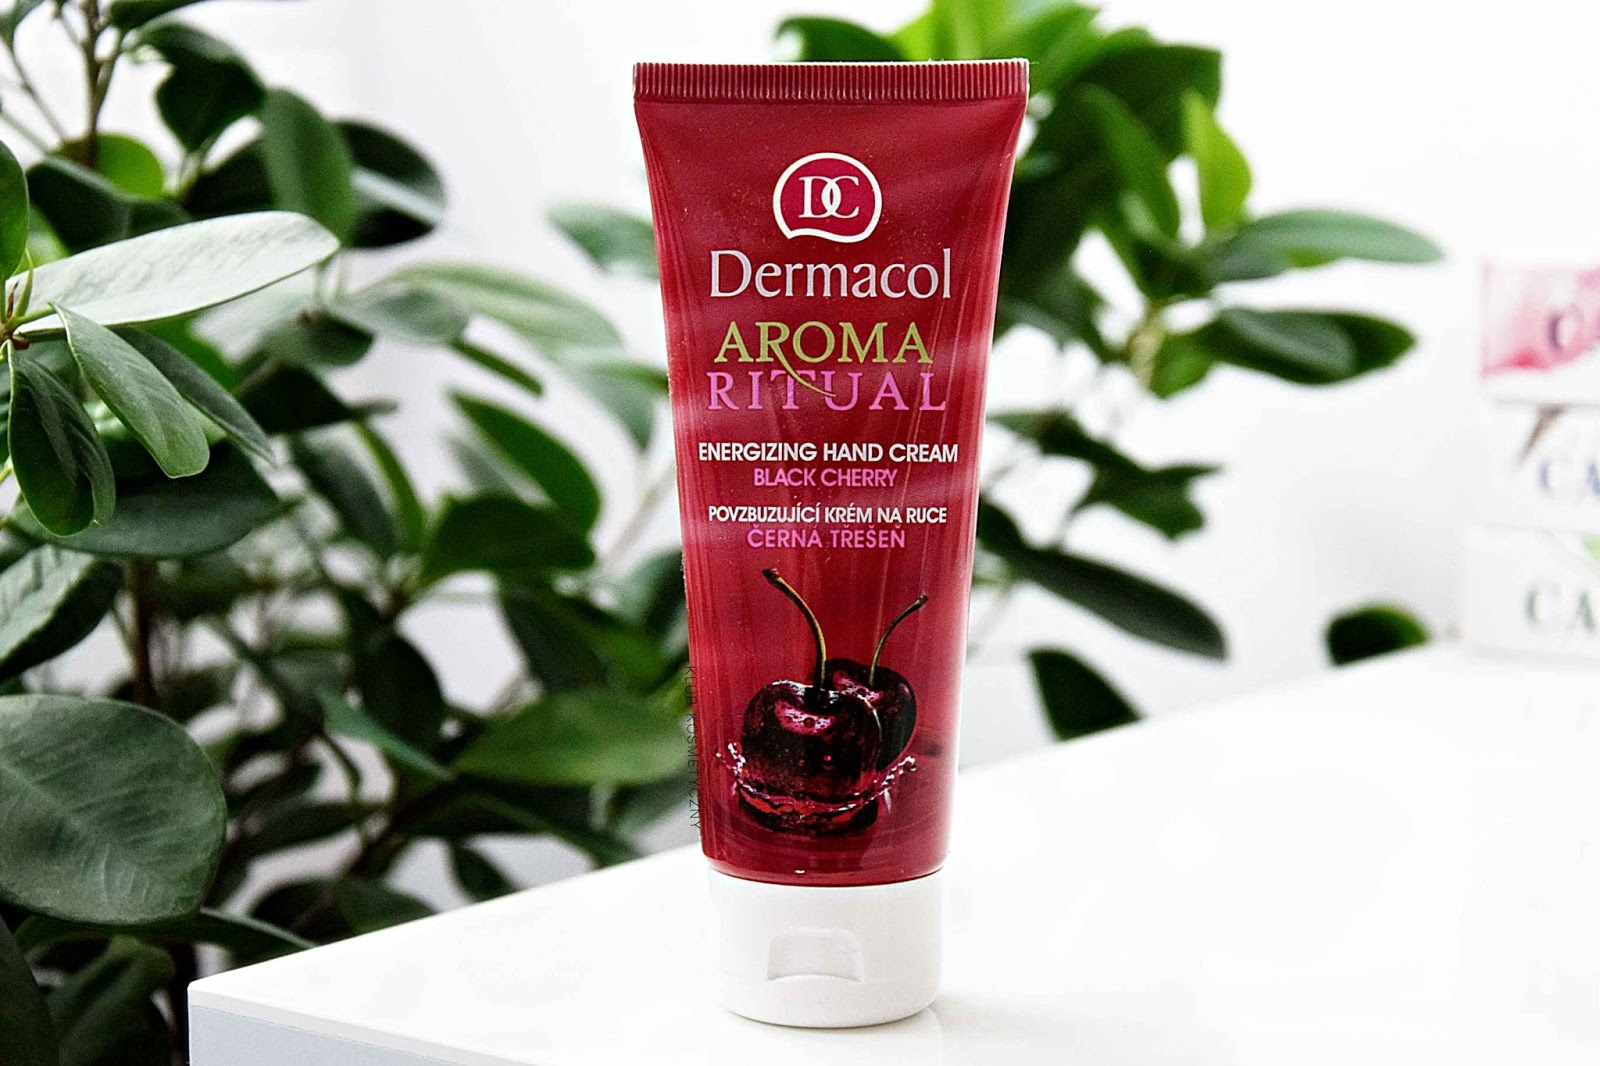 Dermacol, Aroma Ritual Black Cherry - krem do rąk